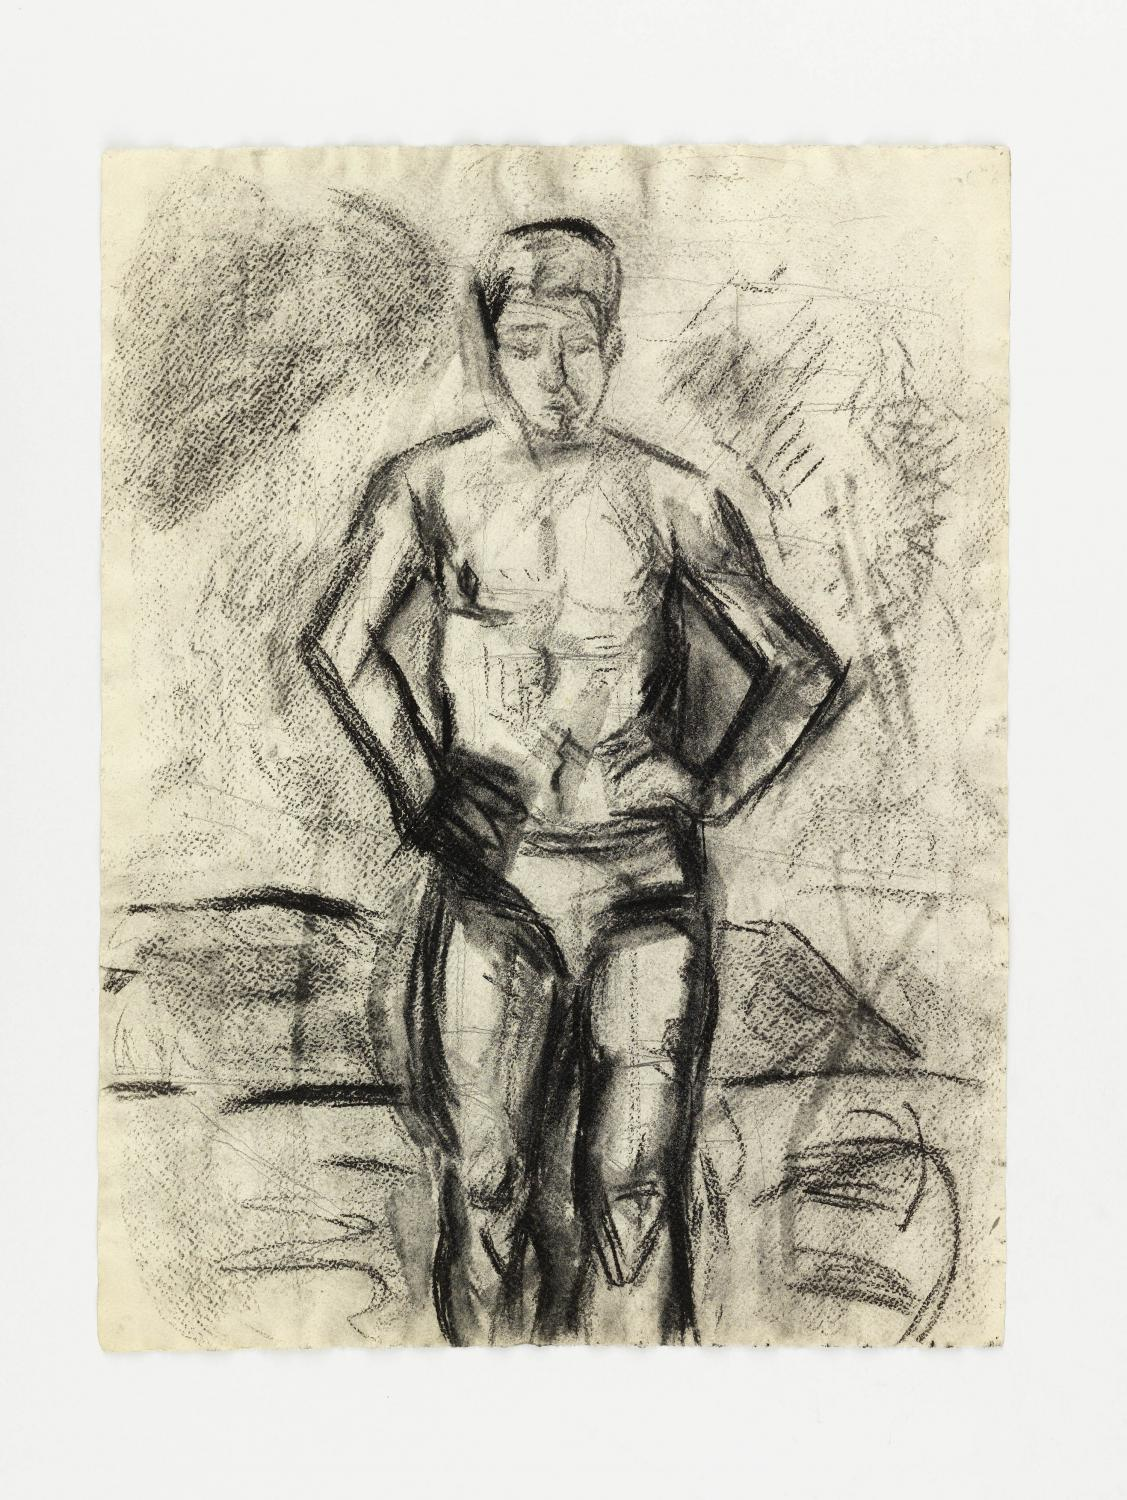 Charcoal drawing of a man in underwear, looking down, facing the viewer, on cream-colored paper. Outline of centered, standing figure is densely black; shaded areas show paper texture.